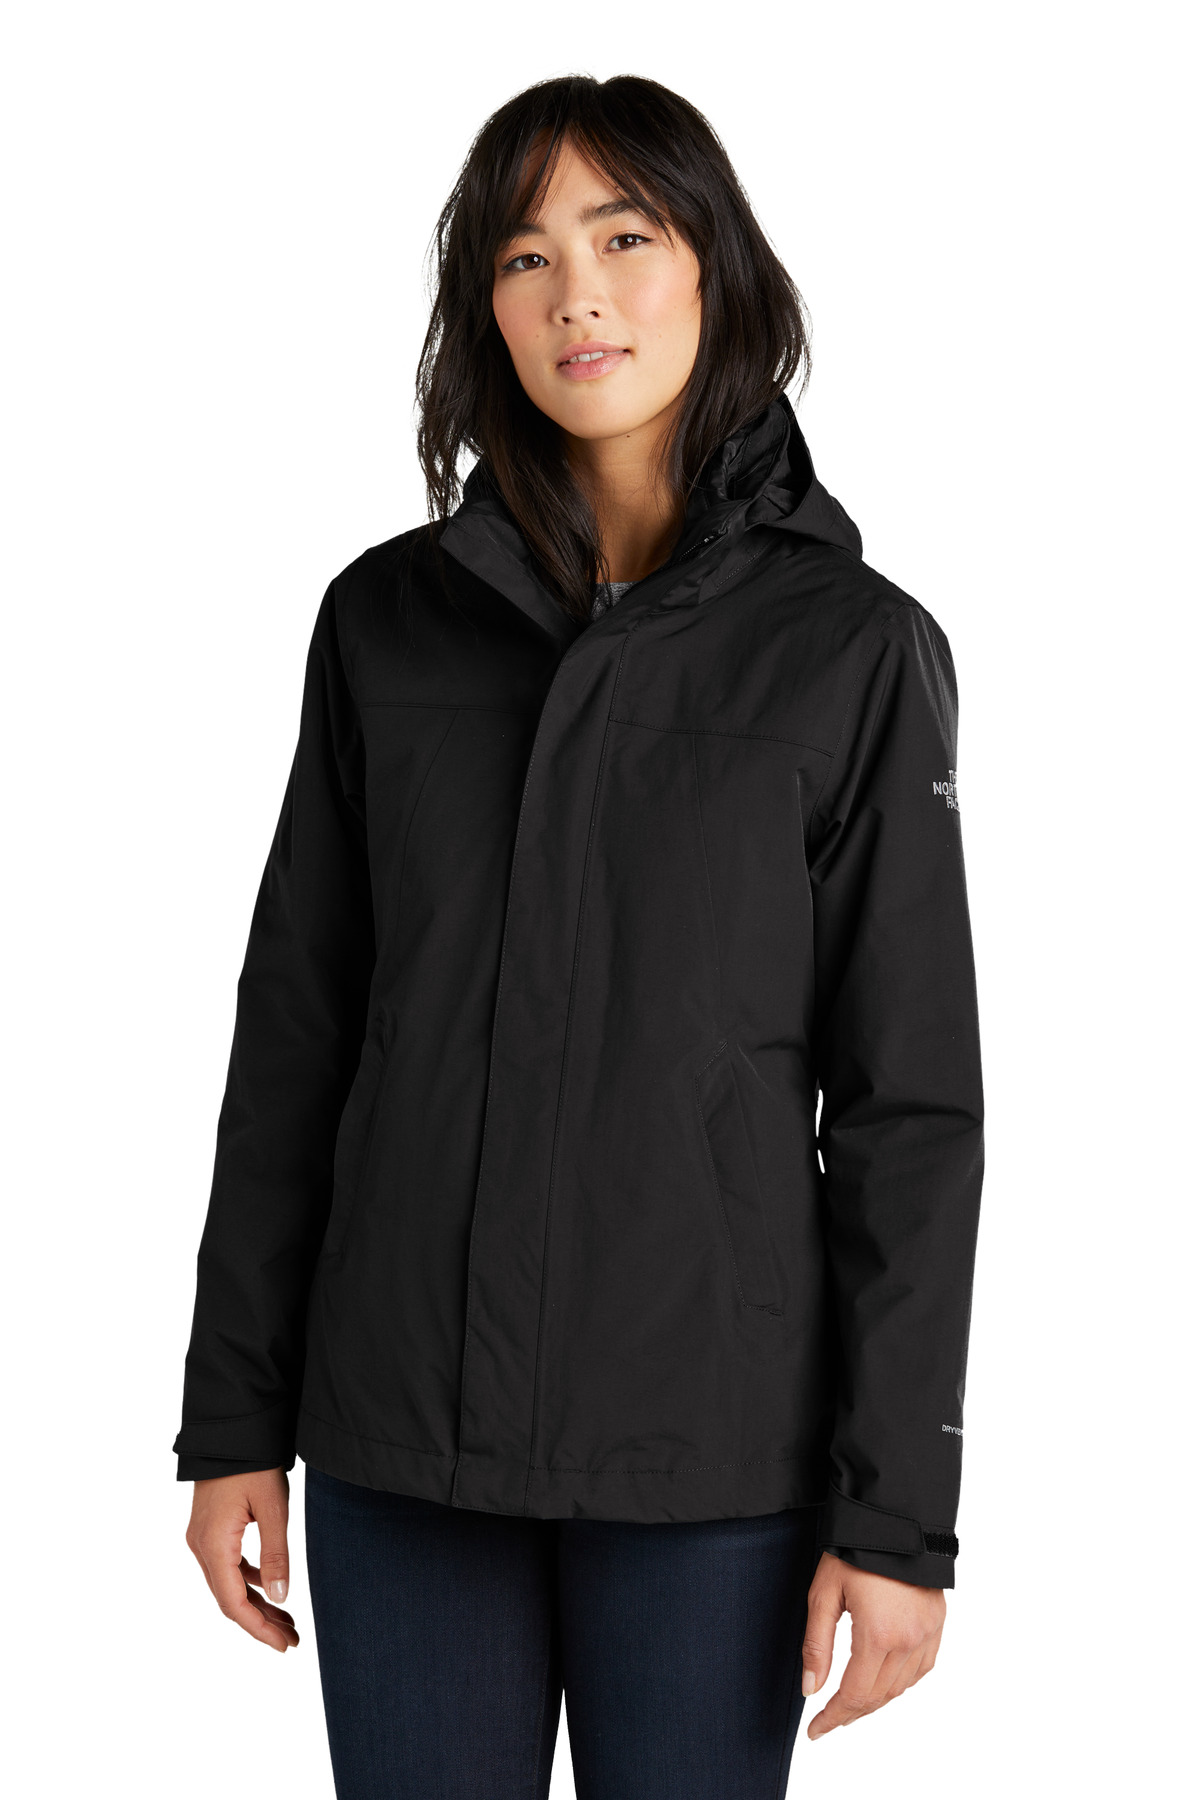 The North Face ®  Ladies Traverse Triclimate ®  3-in-1 Jacket NF0A5IRO - TNF Black